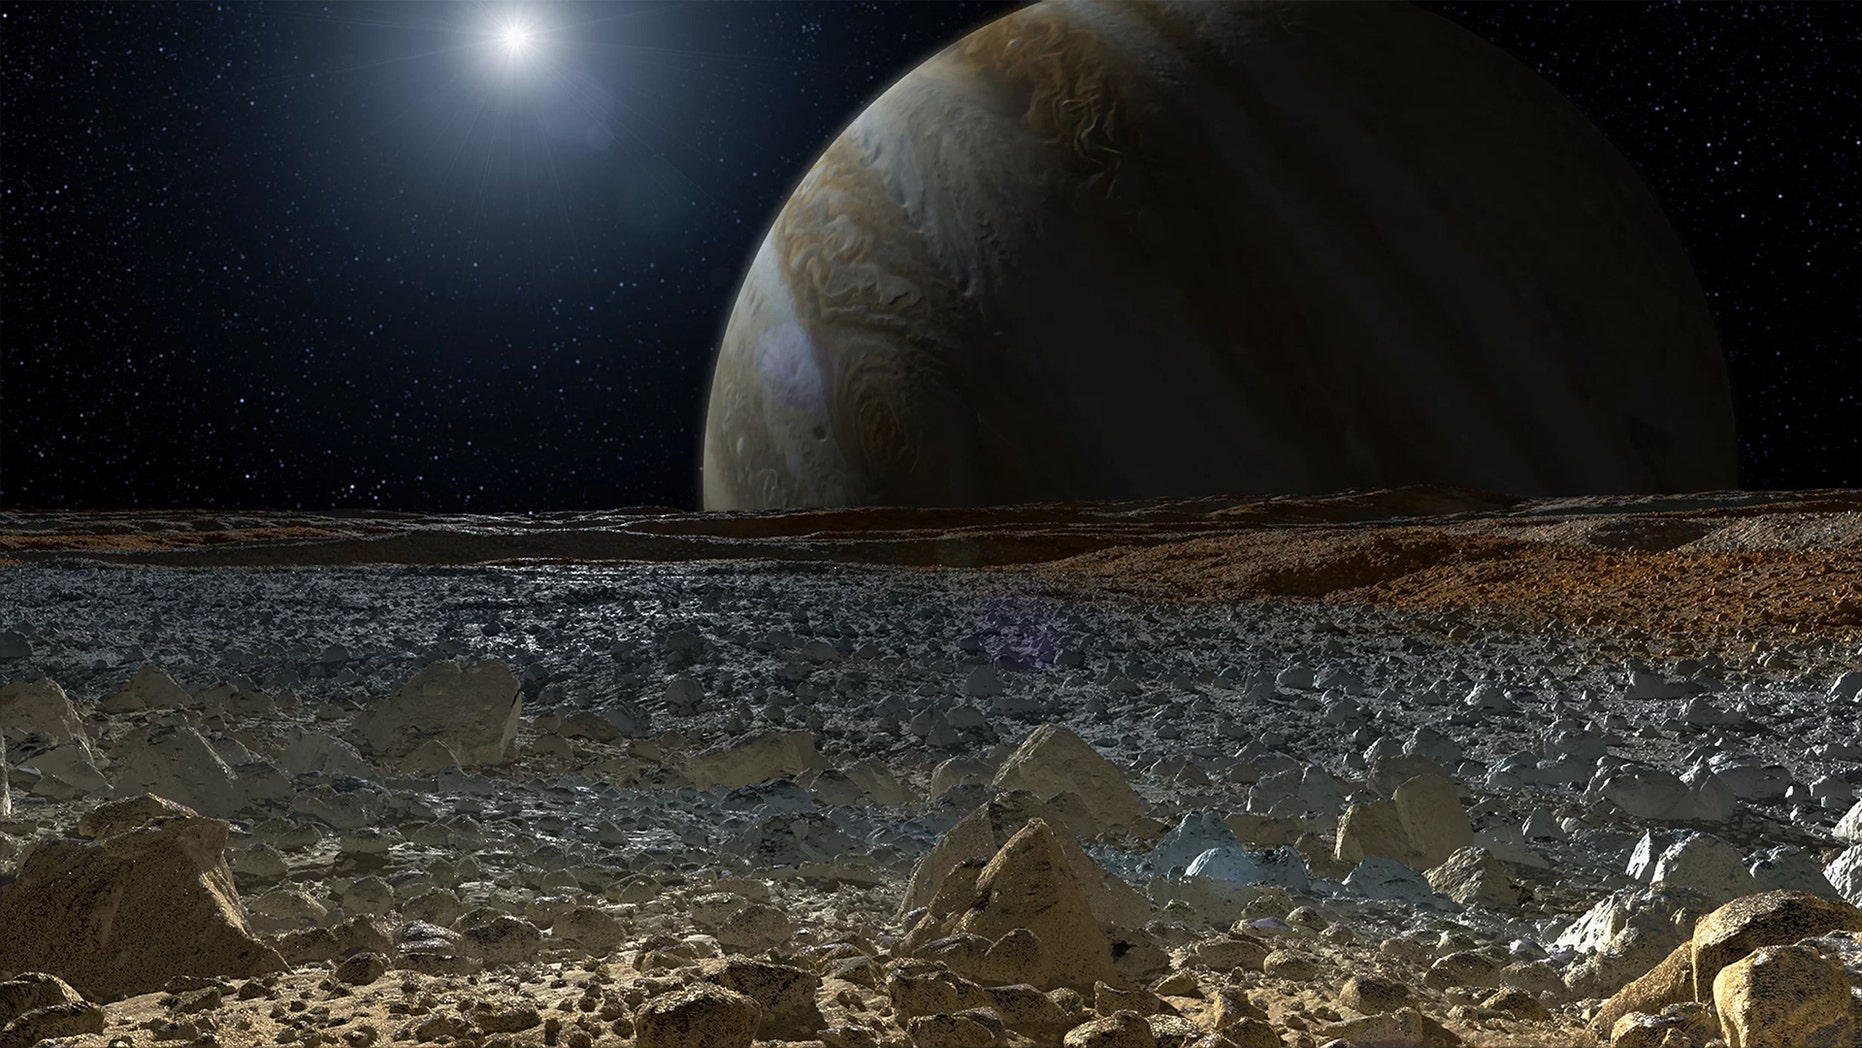 An artist's conception of what the surface of Europa might look like. Credit: NASA